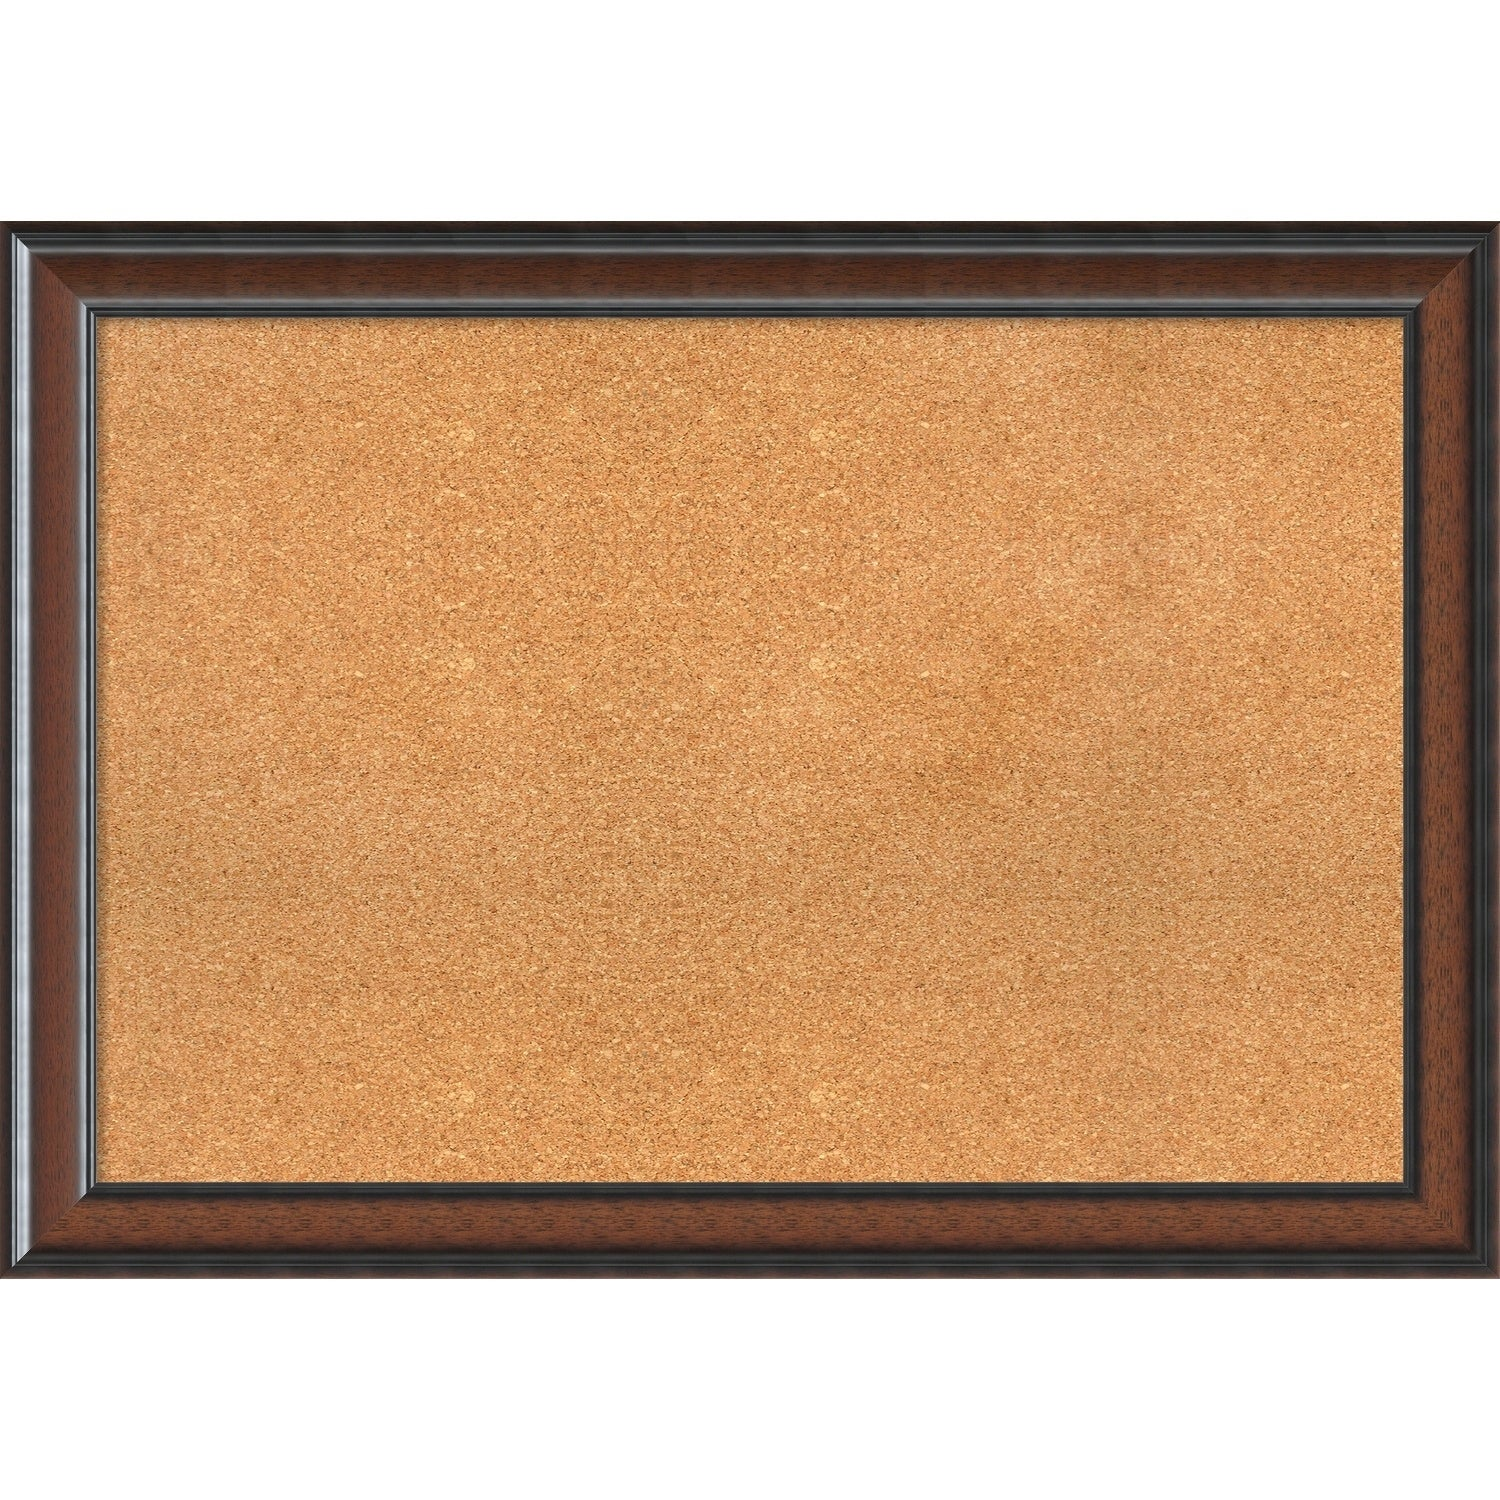 Framed Cork Board, Cyprus Walnut  Free Shipping Today